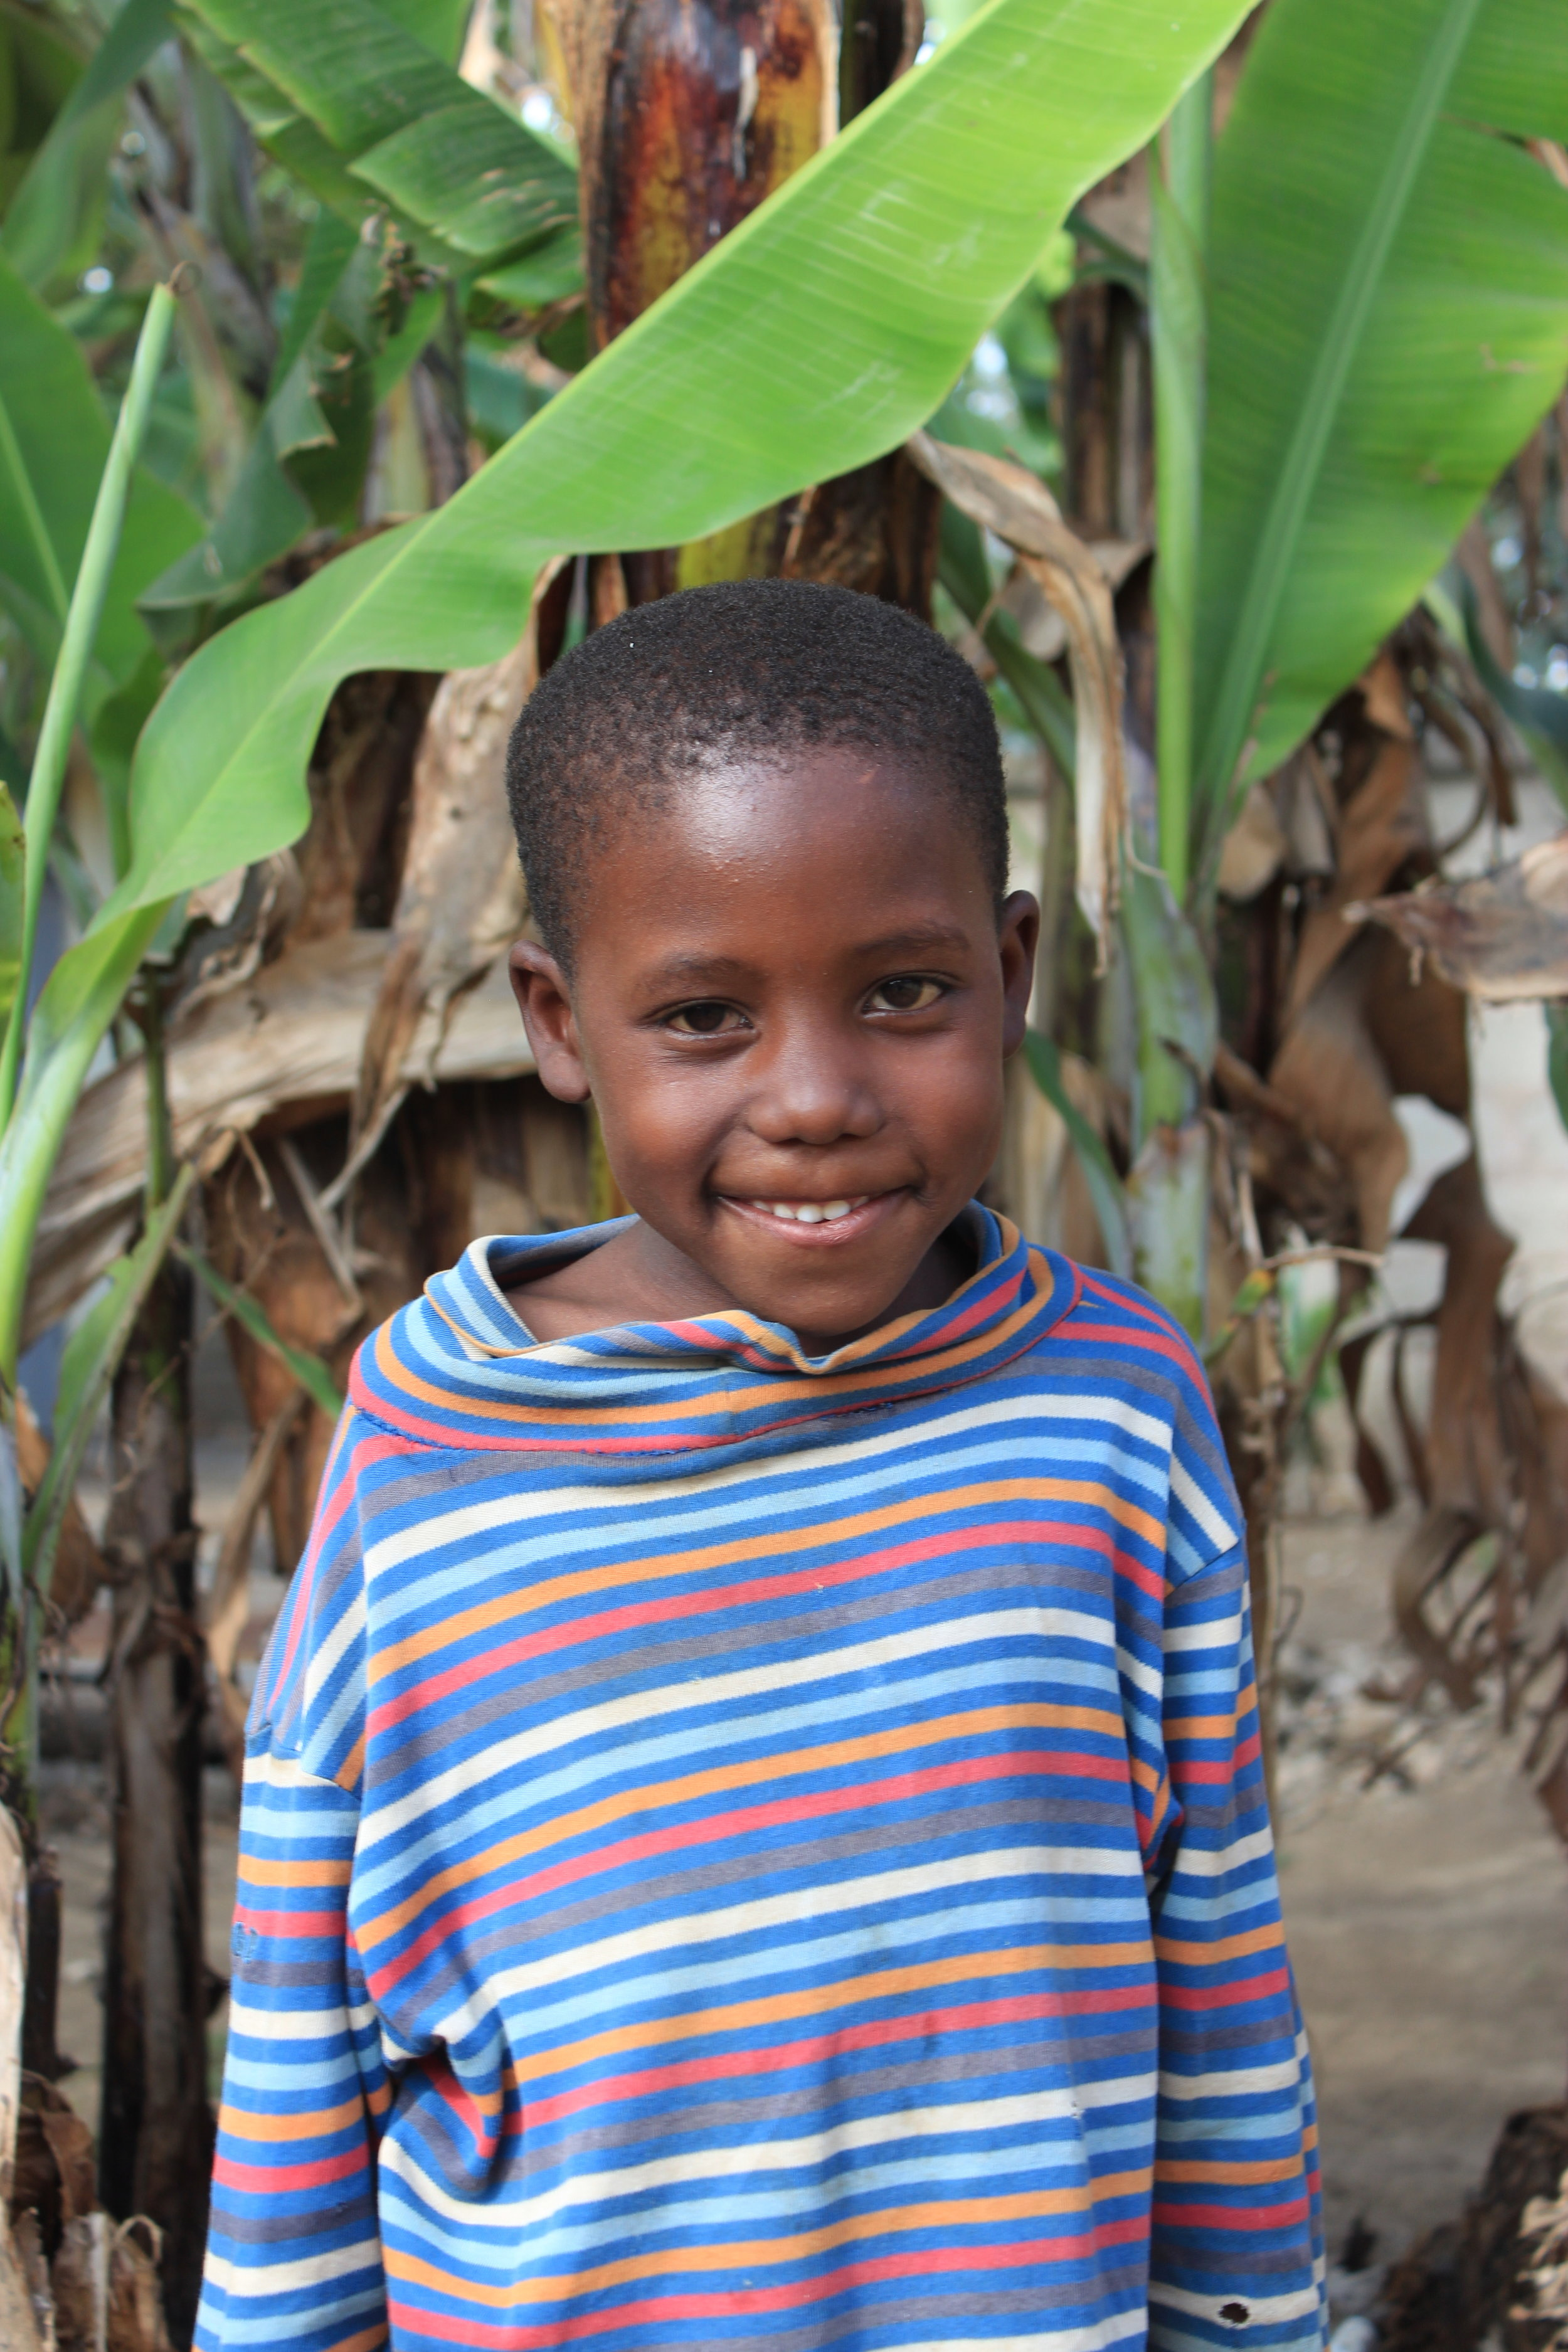 Moses, 6 - Moses is from a remote village in the interior of Tanzania. His mother passed away and his father became unable to care for him due to alcoholism and health issues. Moses came to Hope Center only able to speak his mother tongue. Now he is learning Swahili and English and is now enrolled in school thanks to one of our gracious supporters donations. He loves playing with all of his older brothers.